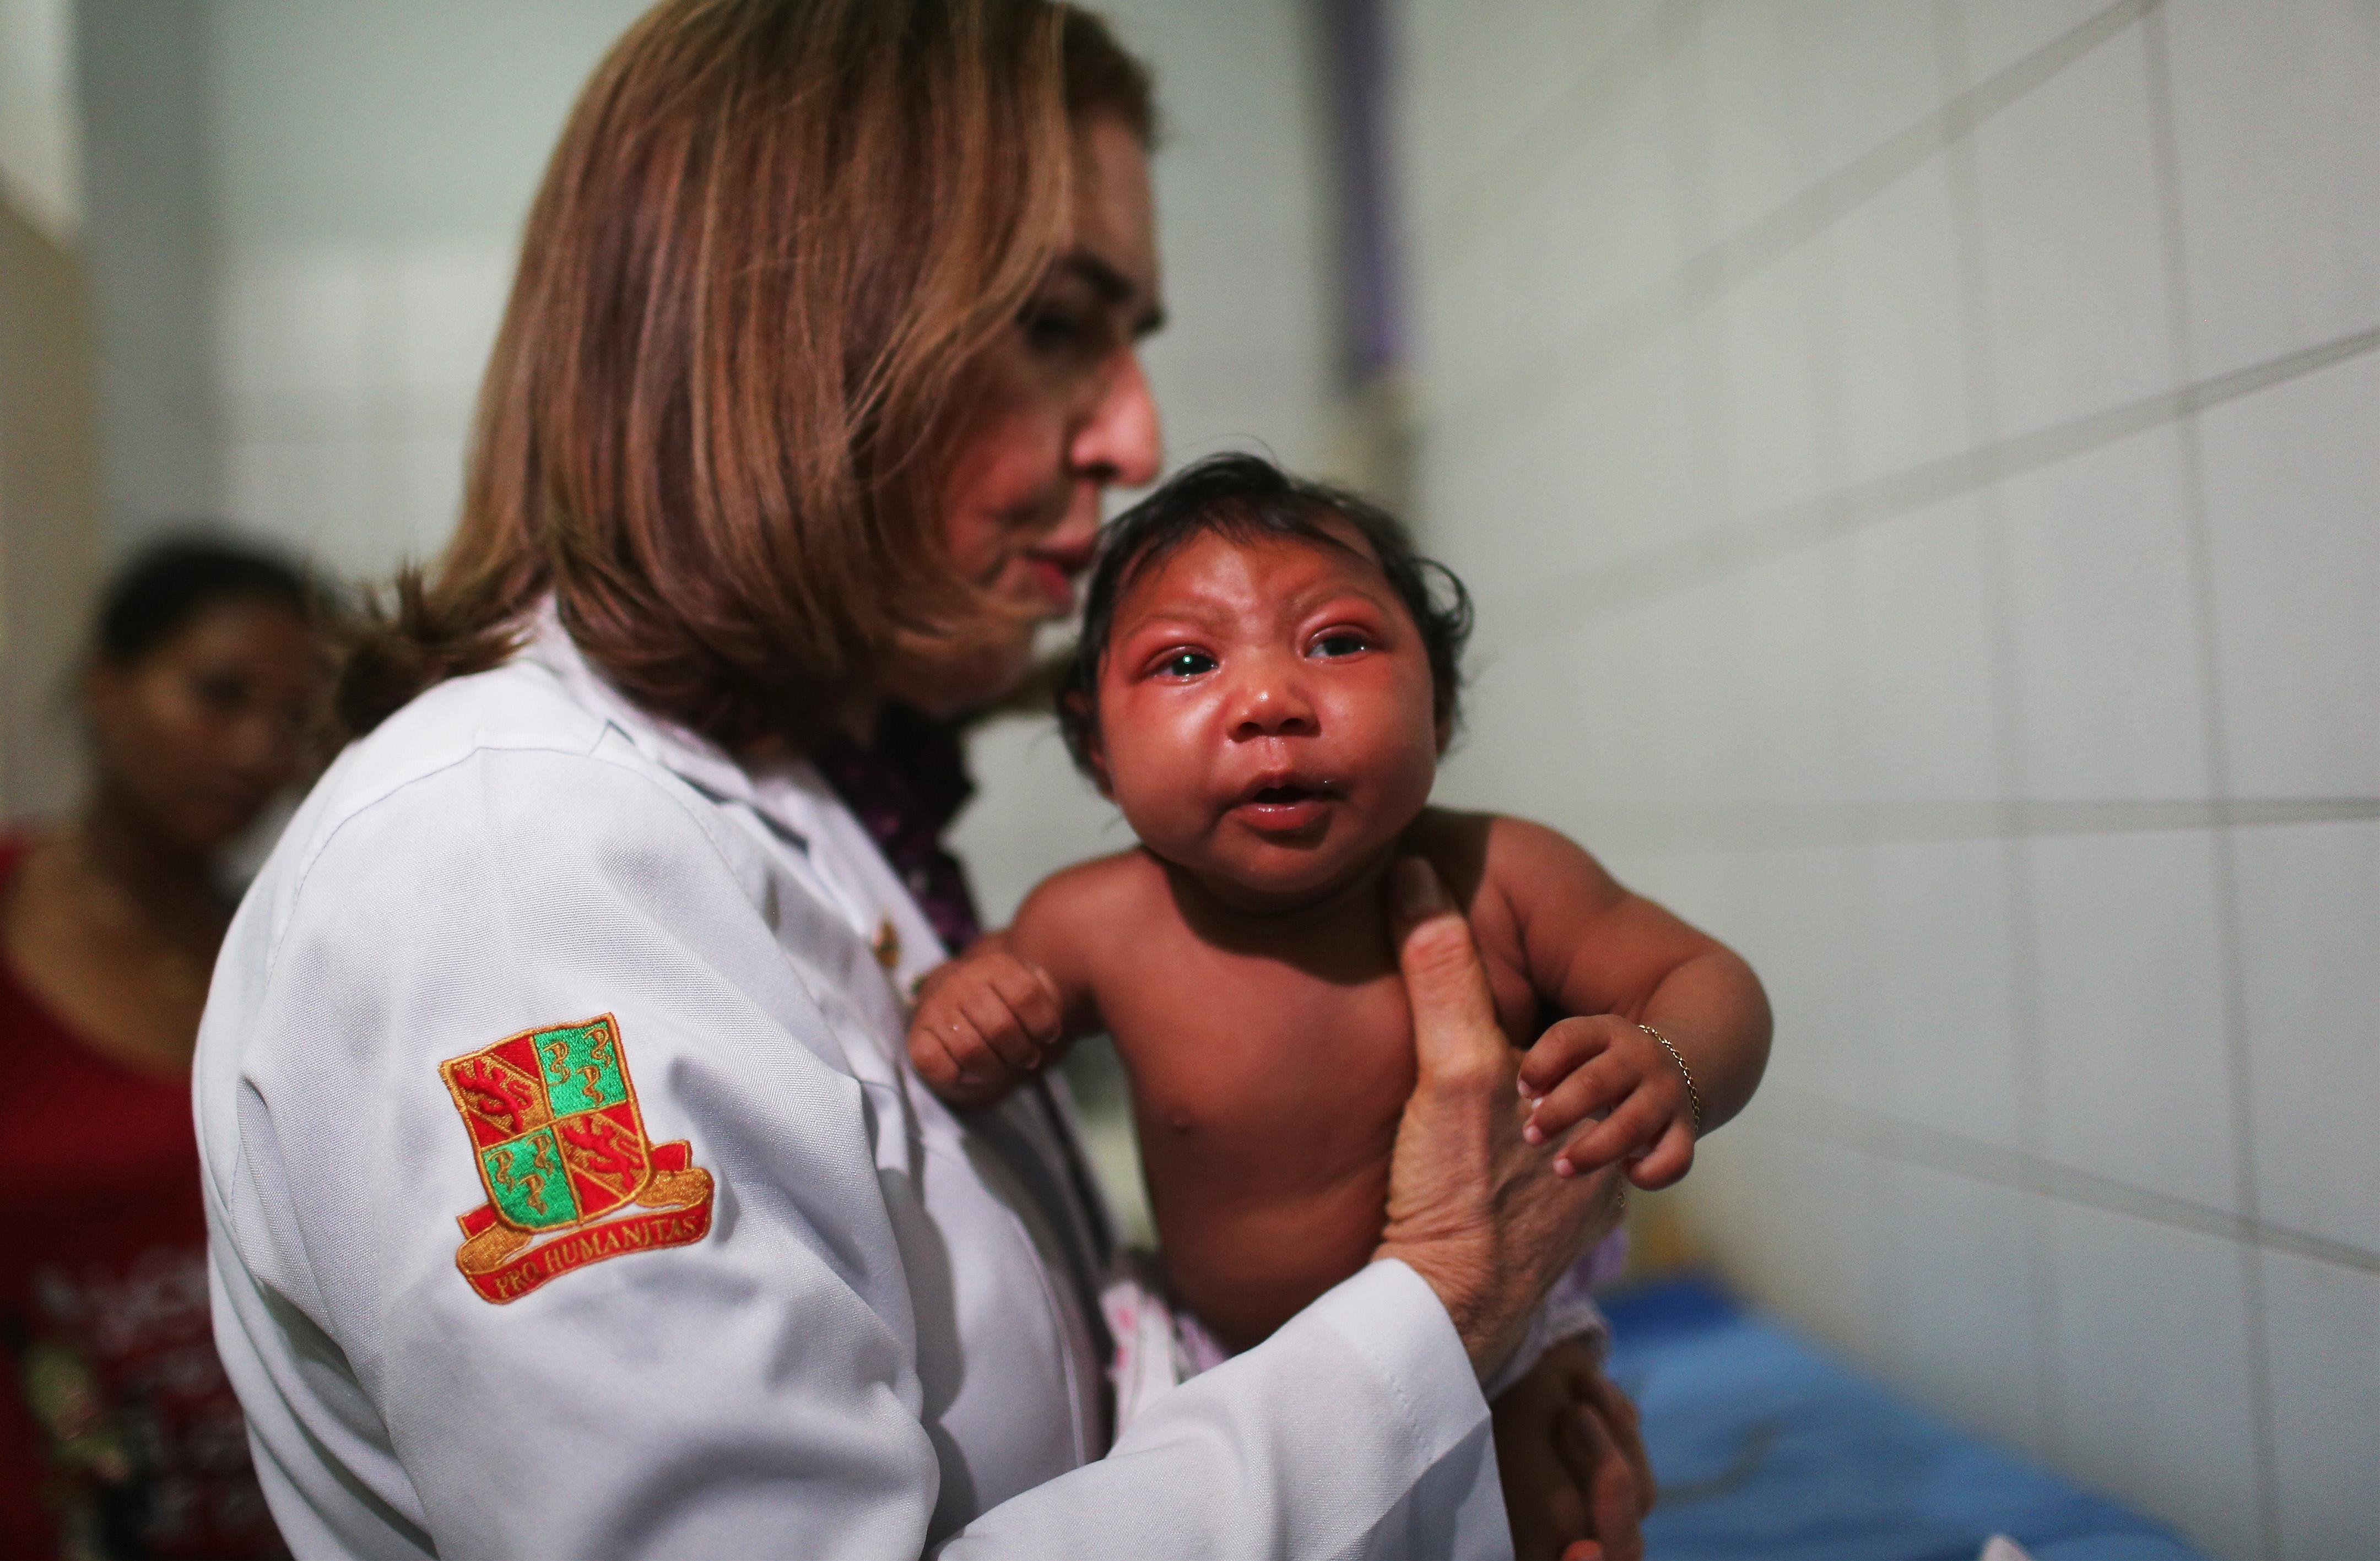 Celeste Philip: current indicators improved, but Zika threat remains serious